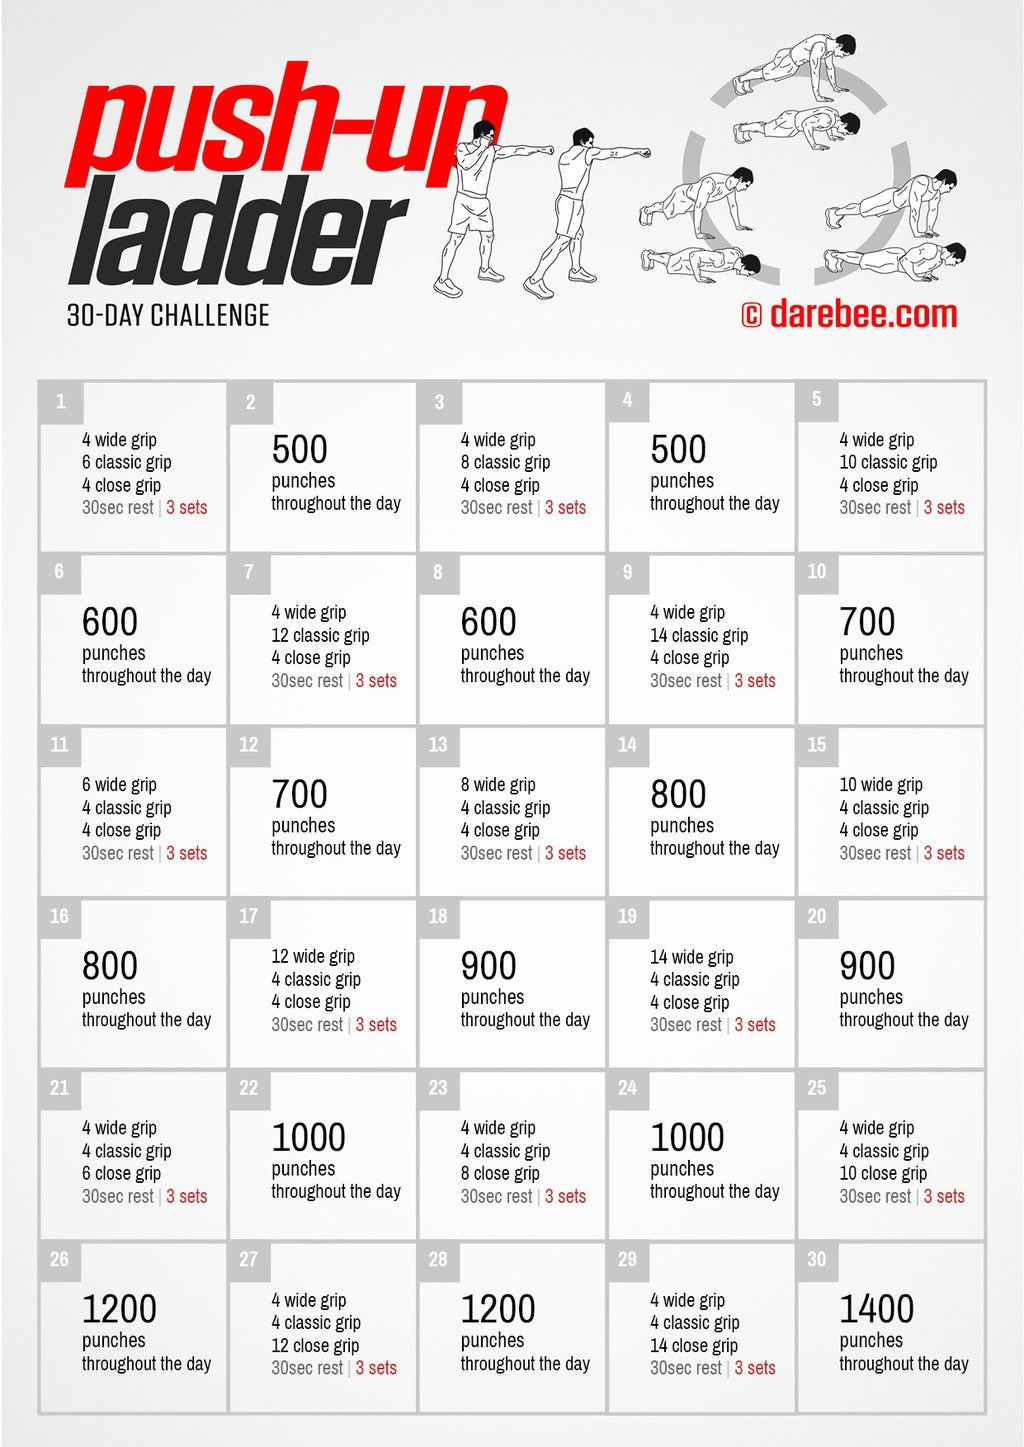 Darebee On Twitter 30 Day Pushup Challenge 30 Day Push Up 30 Day Workout Challenge